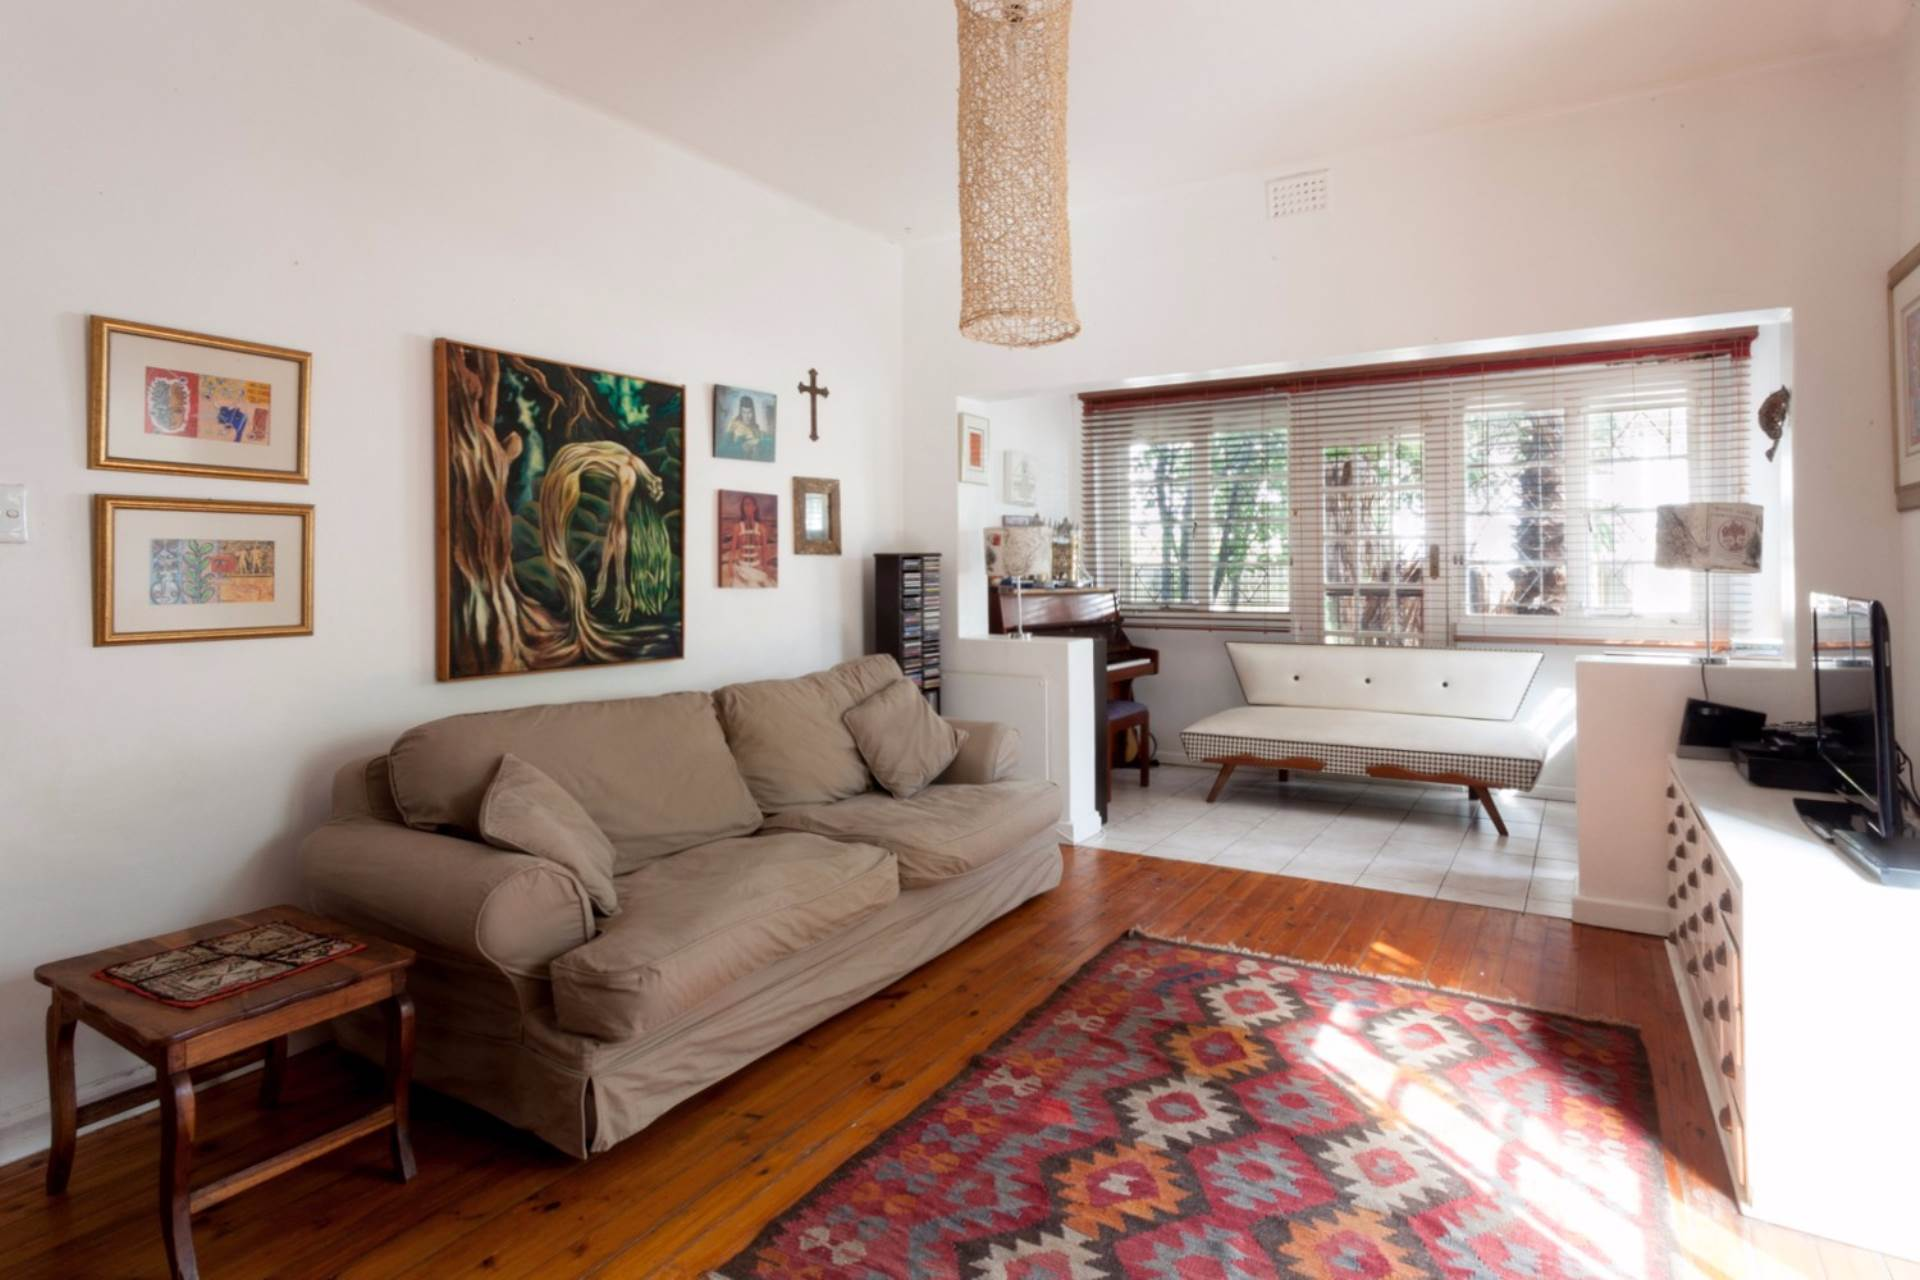 Vredehoek property for sale. Ref No: 13534665. Picture no 3